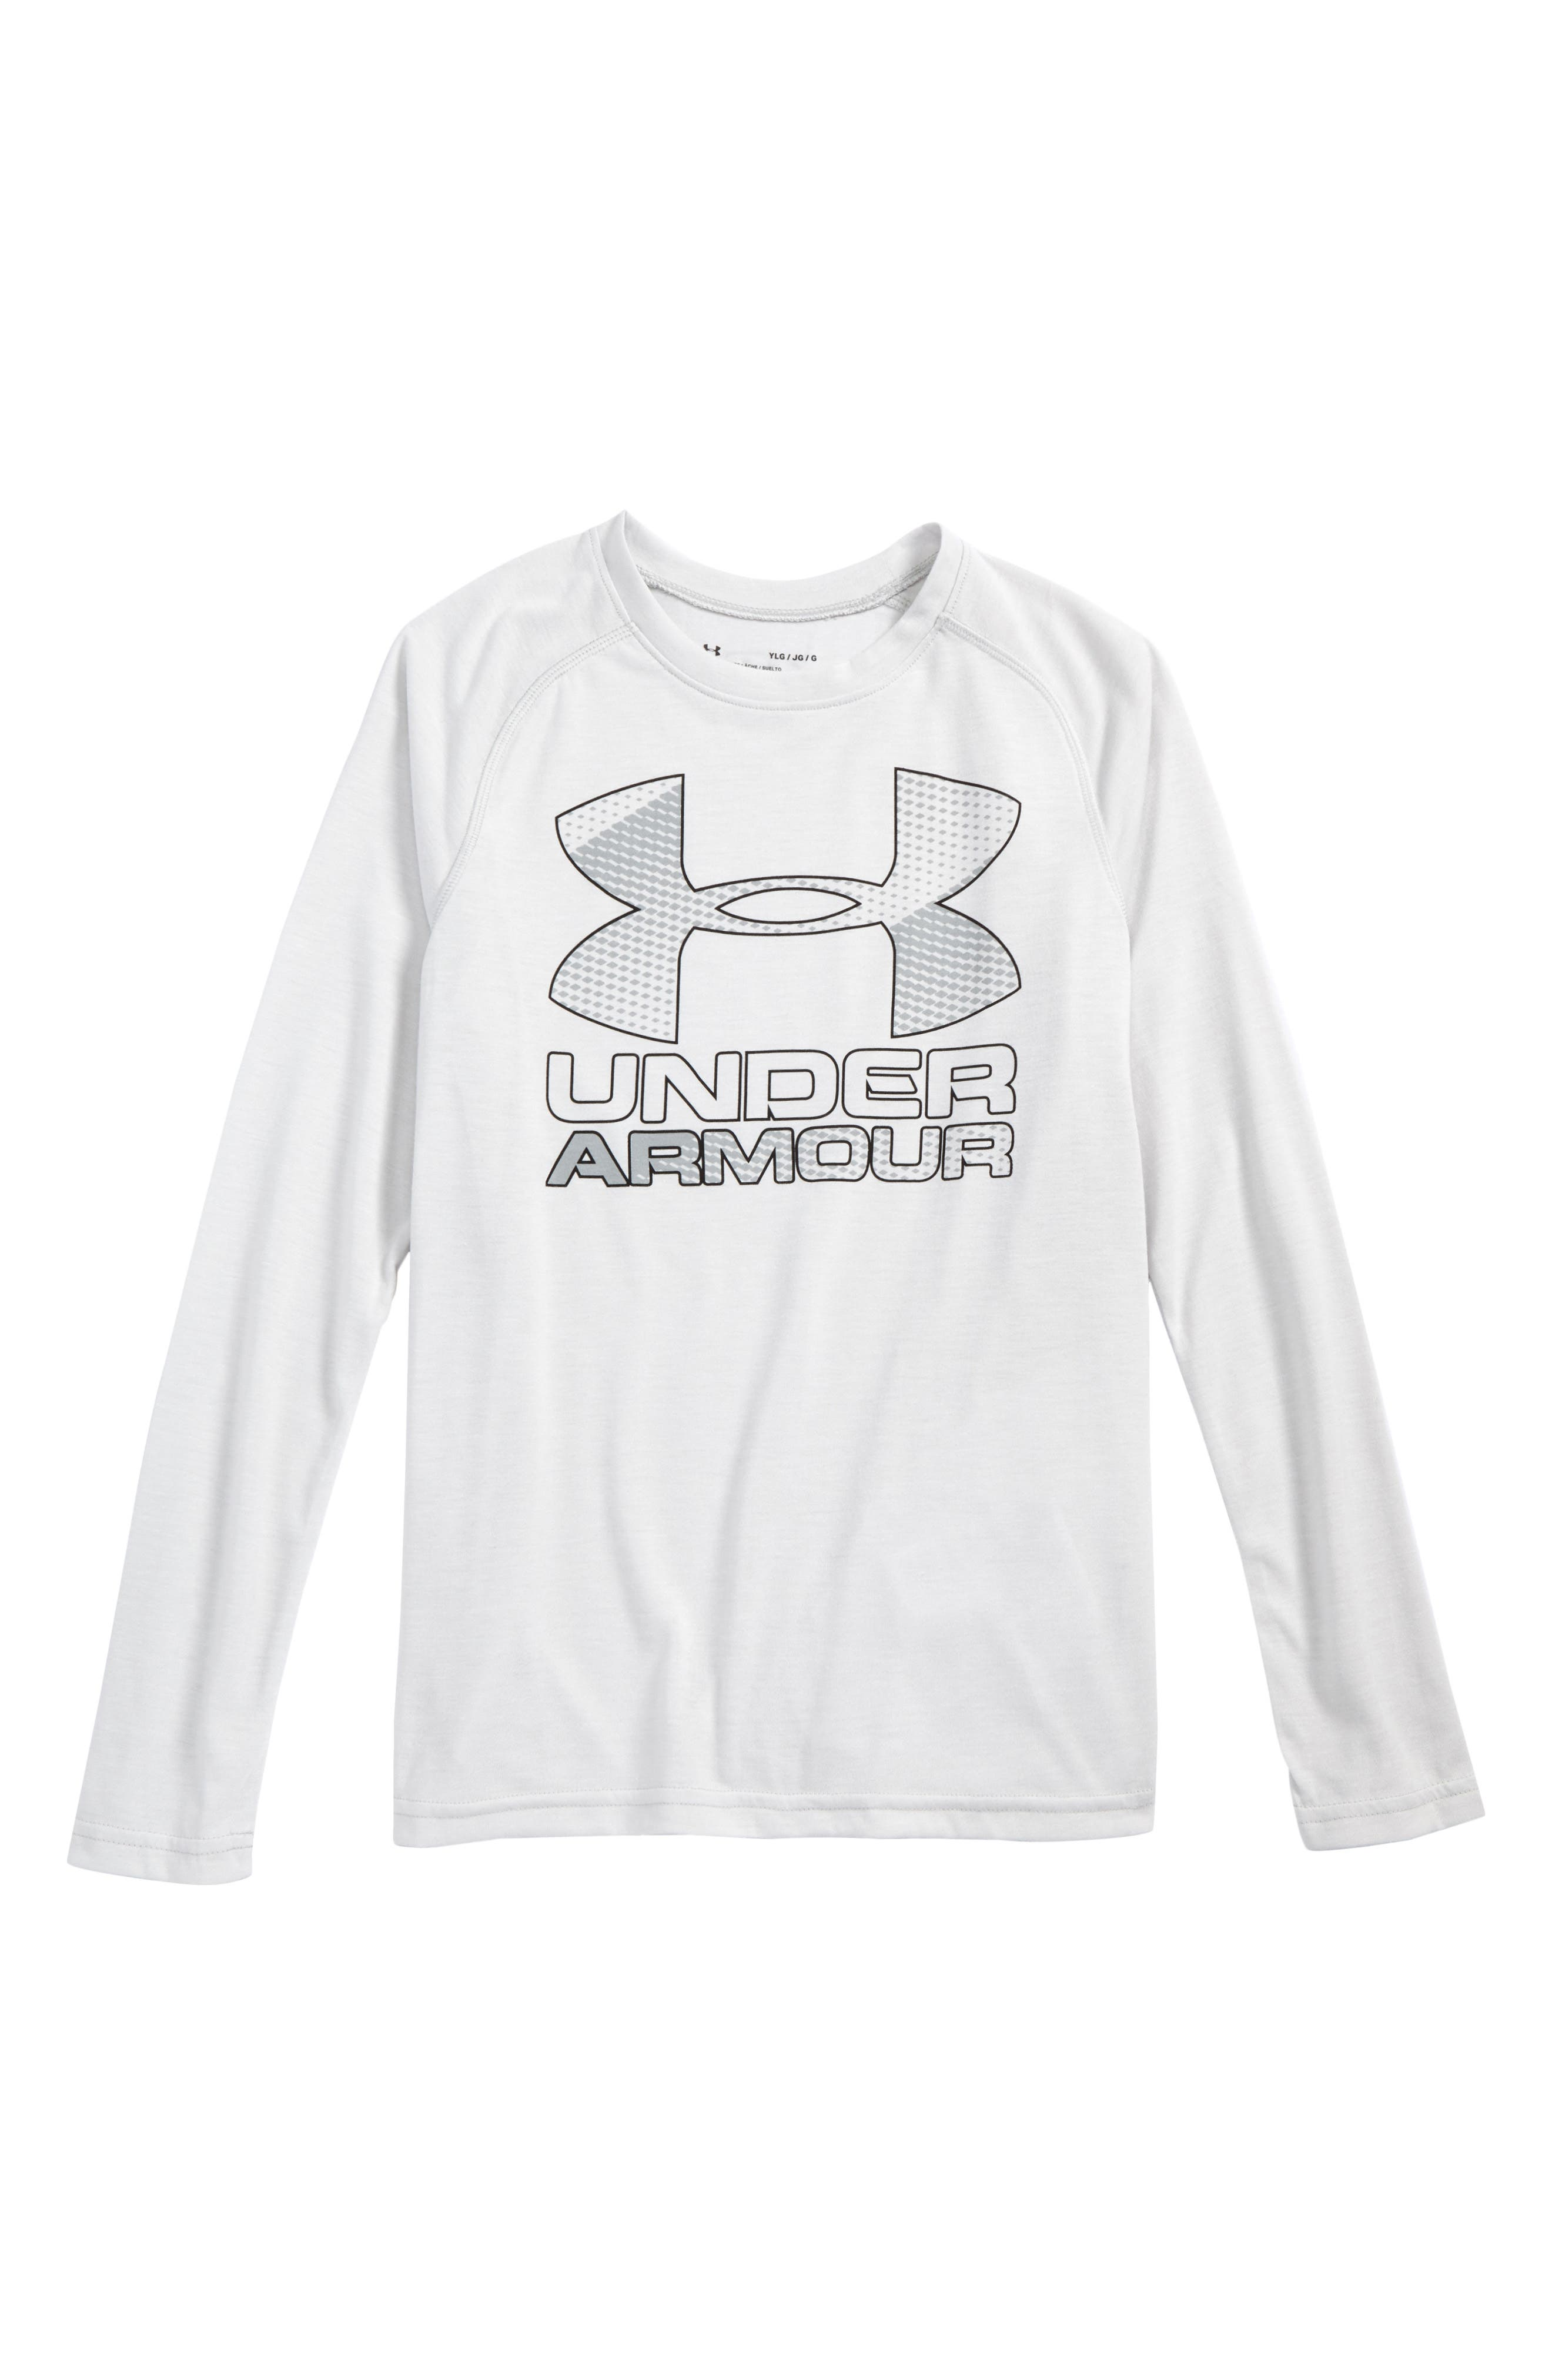 Alternate Image 1 Selected - Under Armour Logo Graphic HeatGear® T-Shirt (Little Boys & Big Boys)